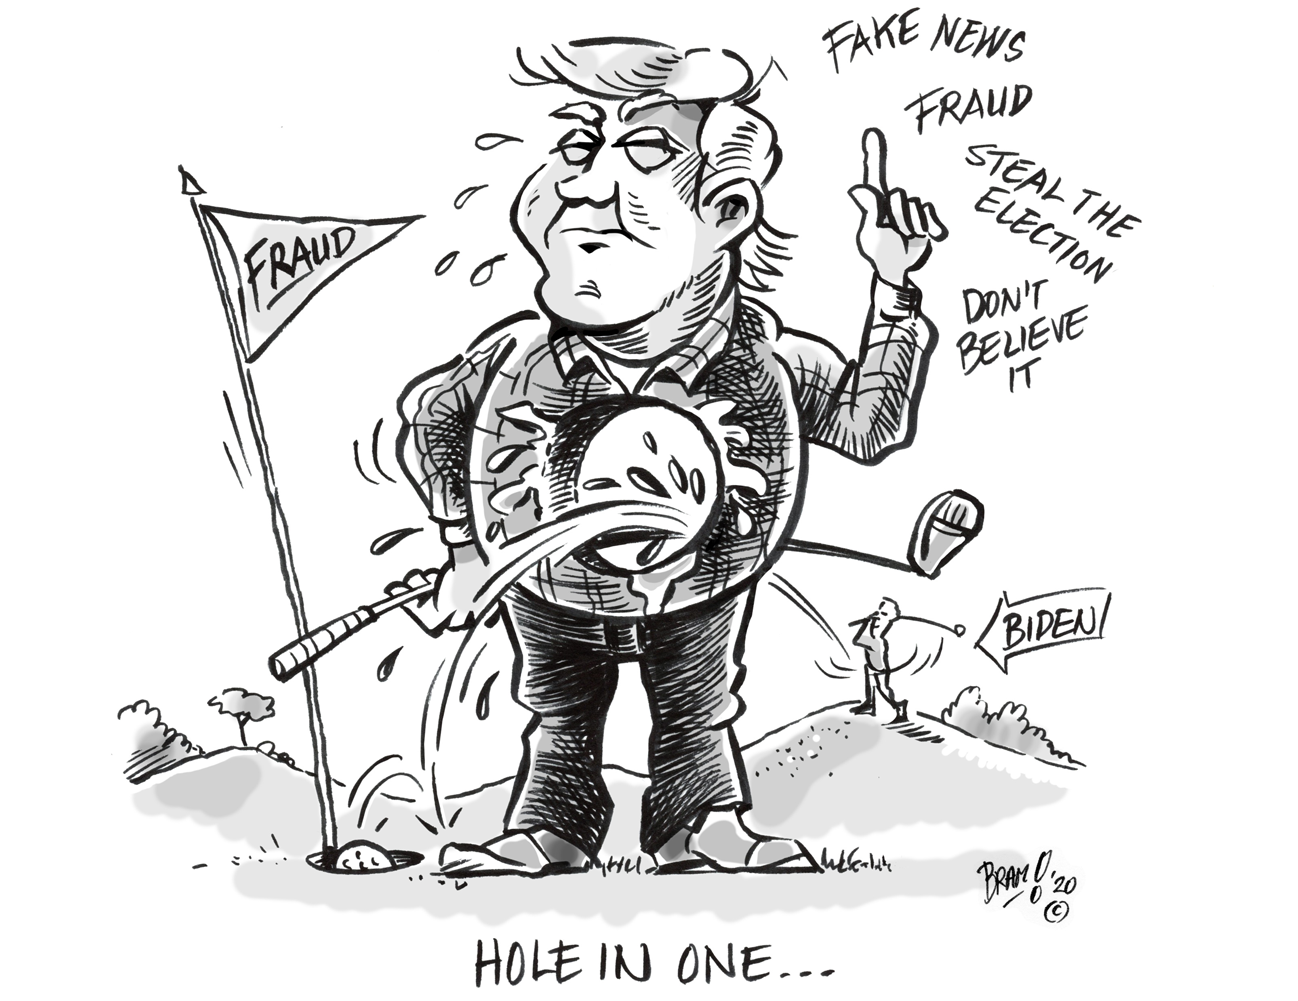 Fraud_hole_in_one_Trump